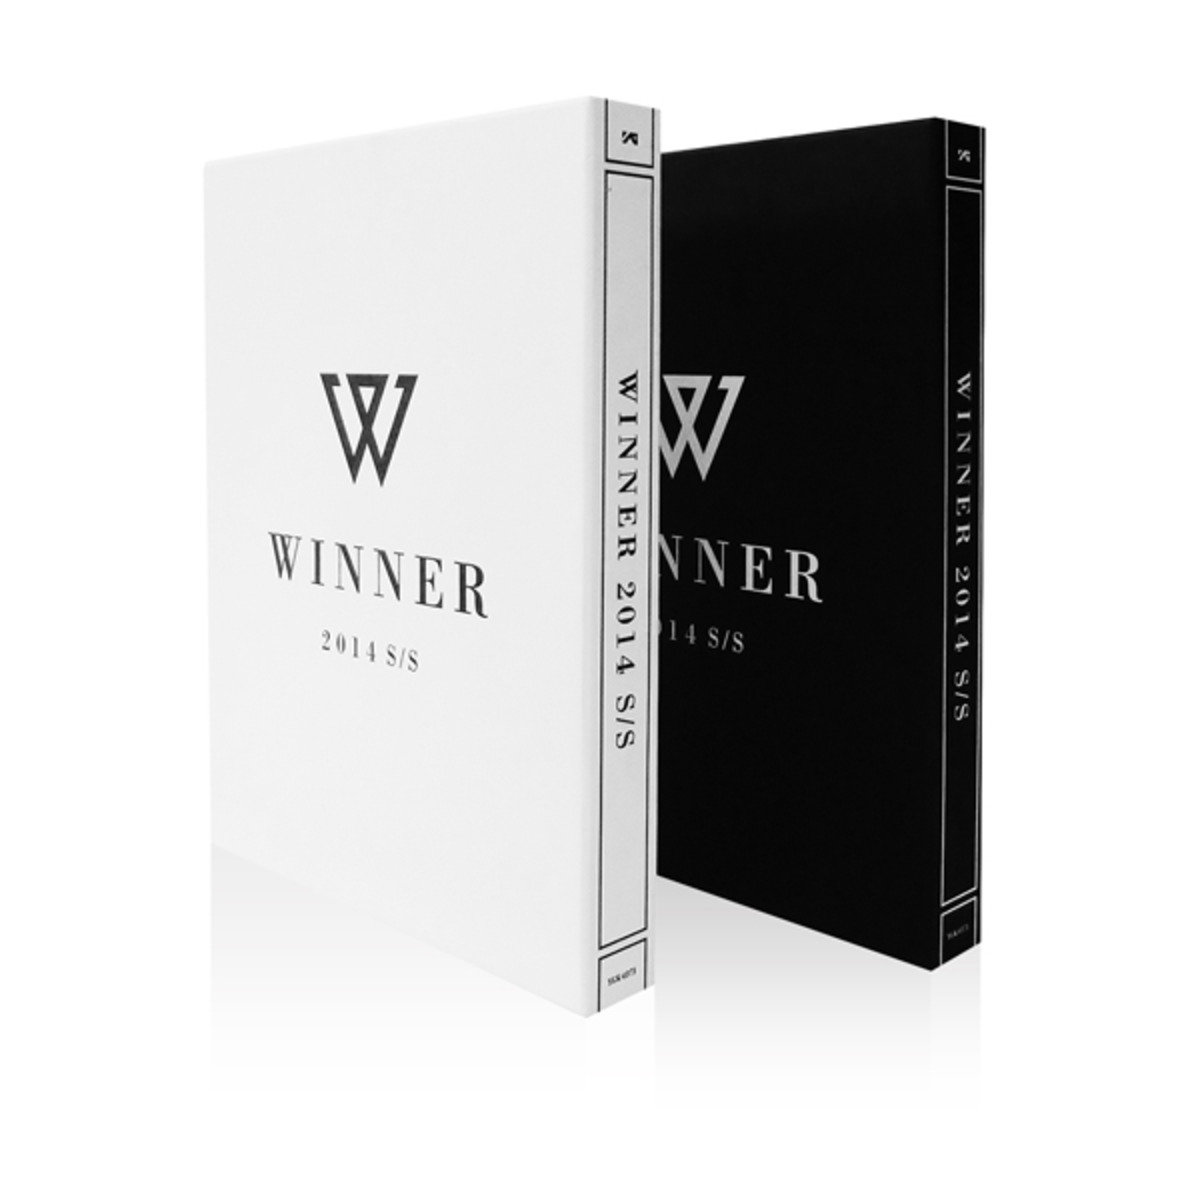 WINNER - DEBUT ALBUM [2014 S/S] (LIMITED EDITION)_White Ver._8809269503626